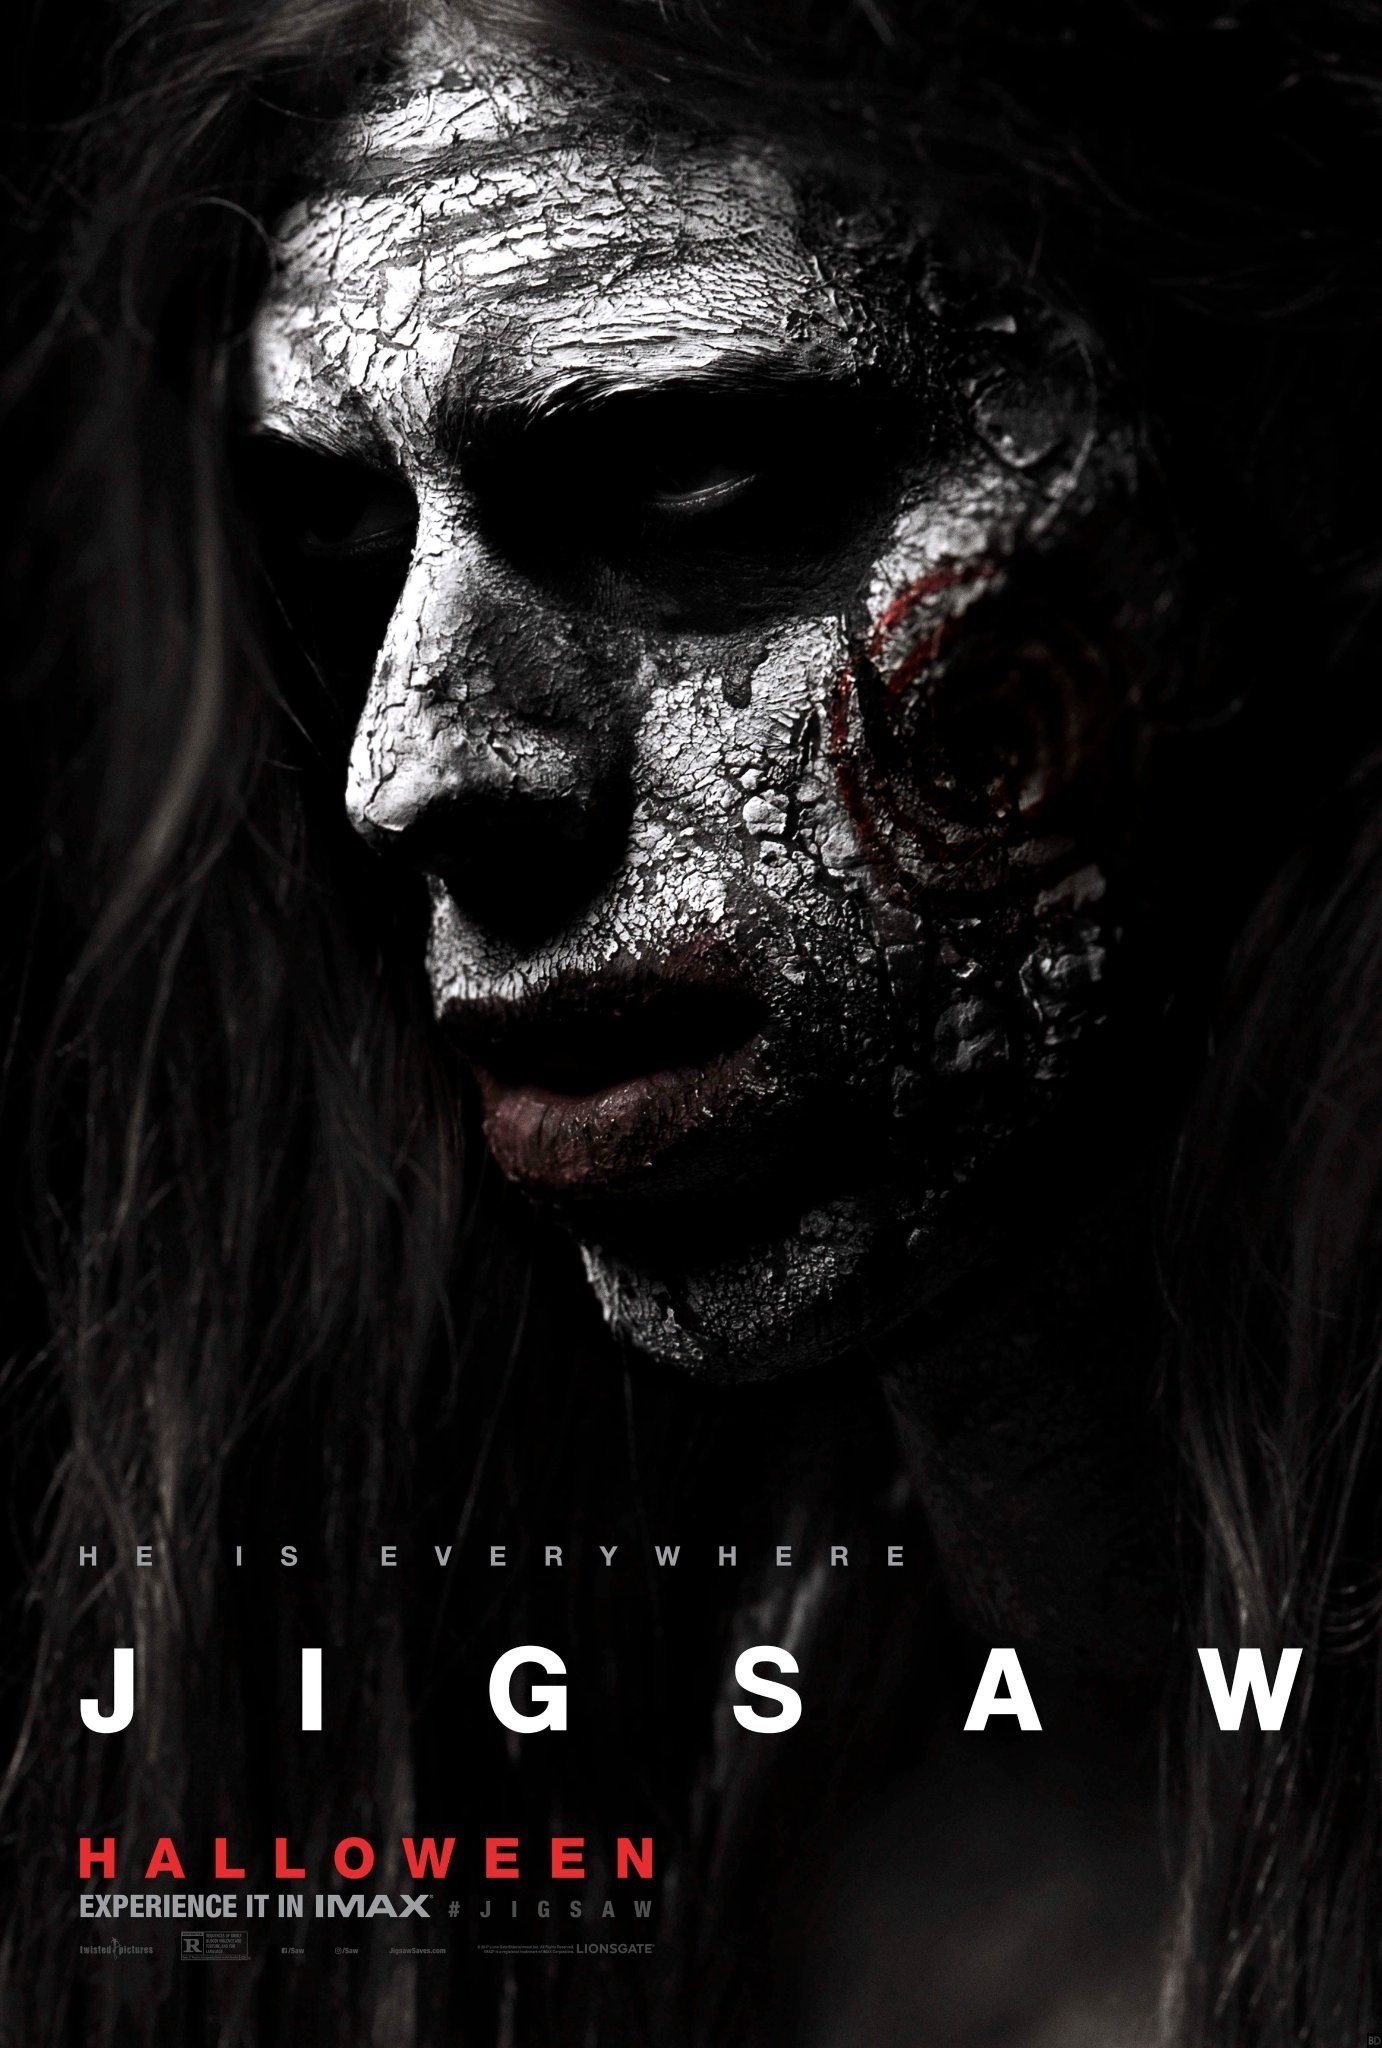 Prepare For Jigsaw With This Supercut Of Saw's Many Gruesome Deaths